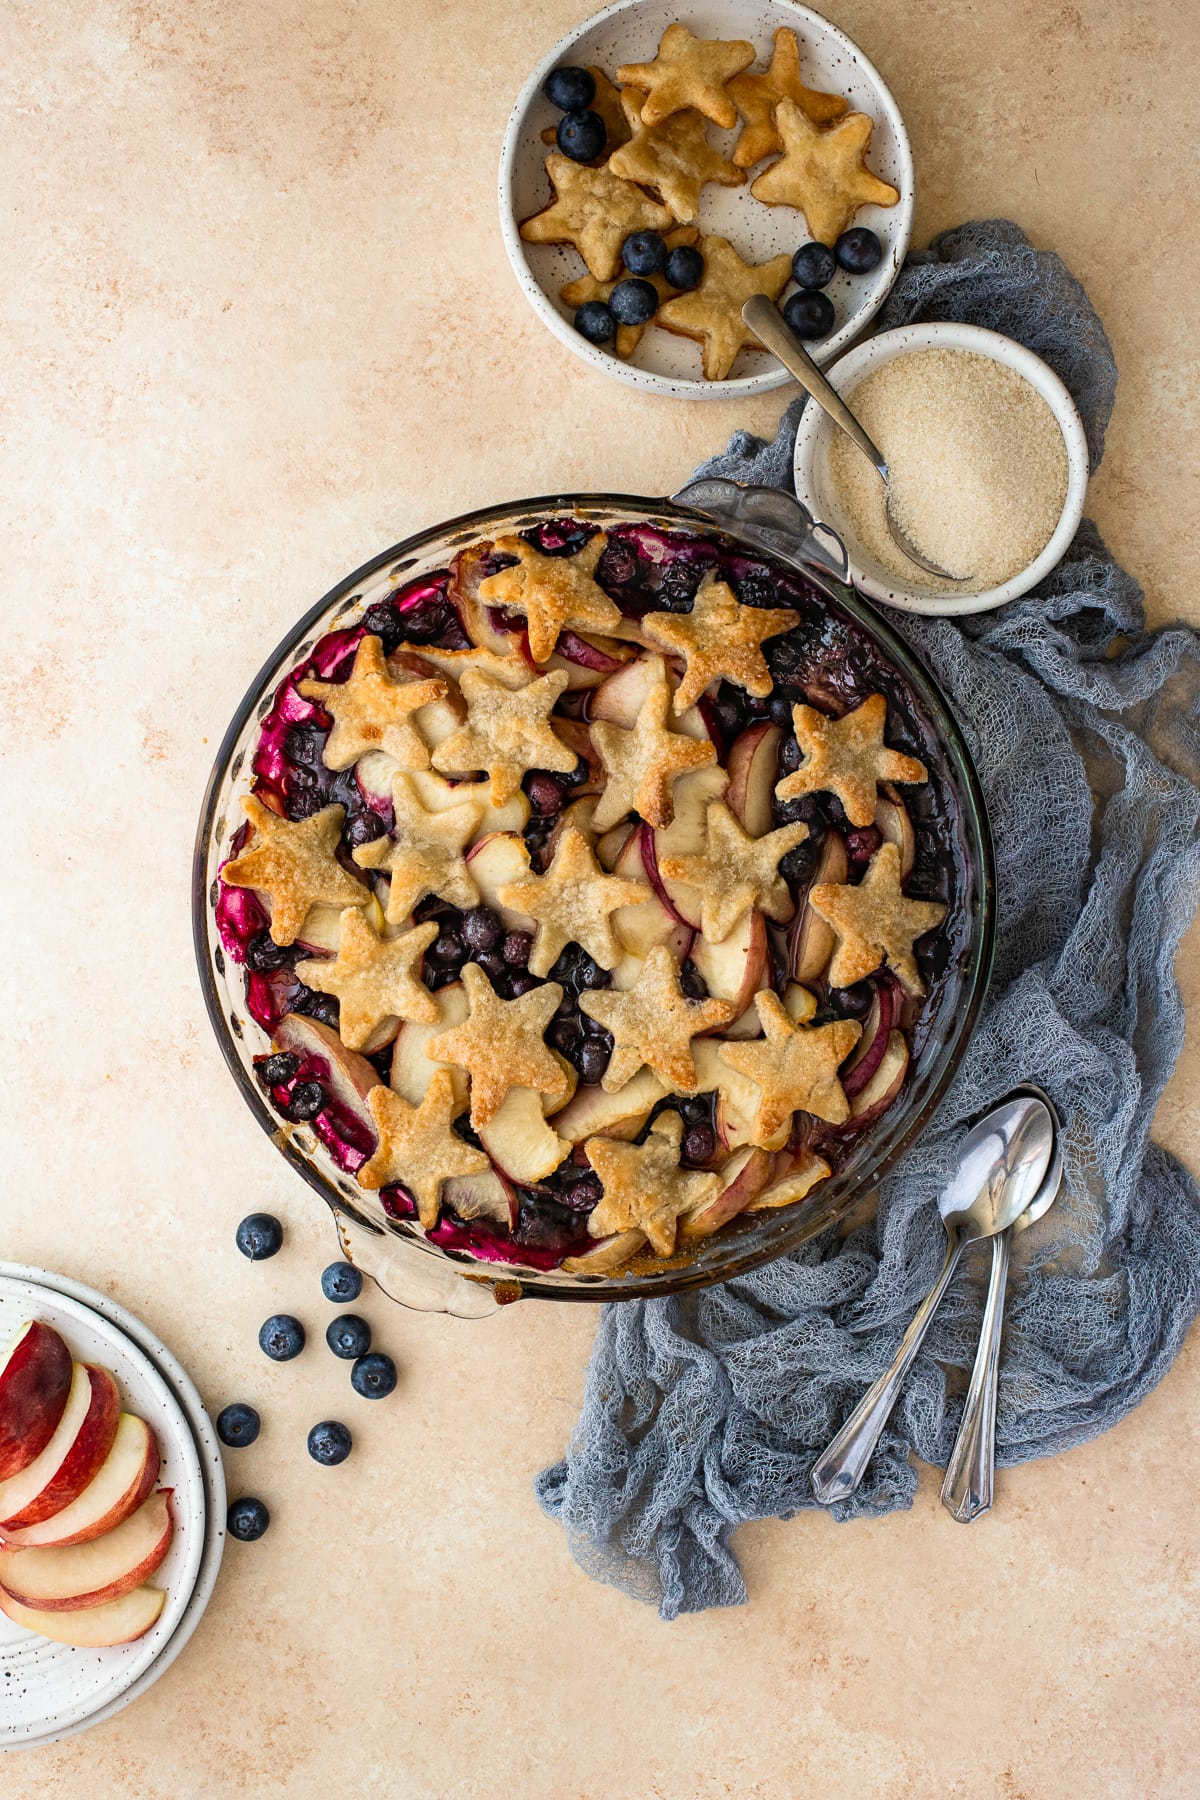 Cobbler baked in a pie dish, topped with pie crust stars, surrounded by fruit.